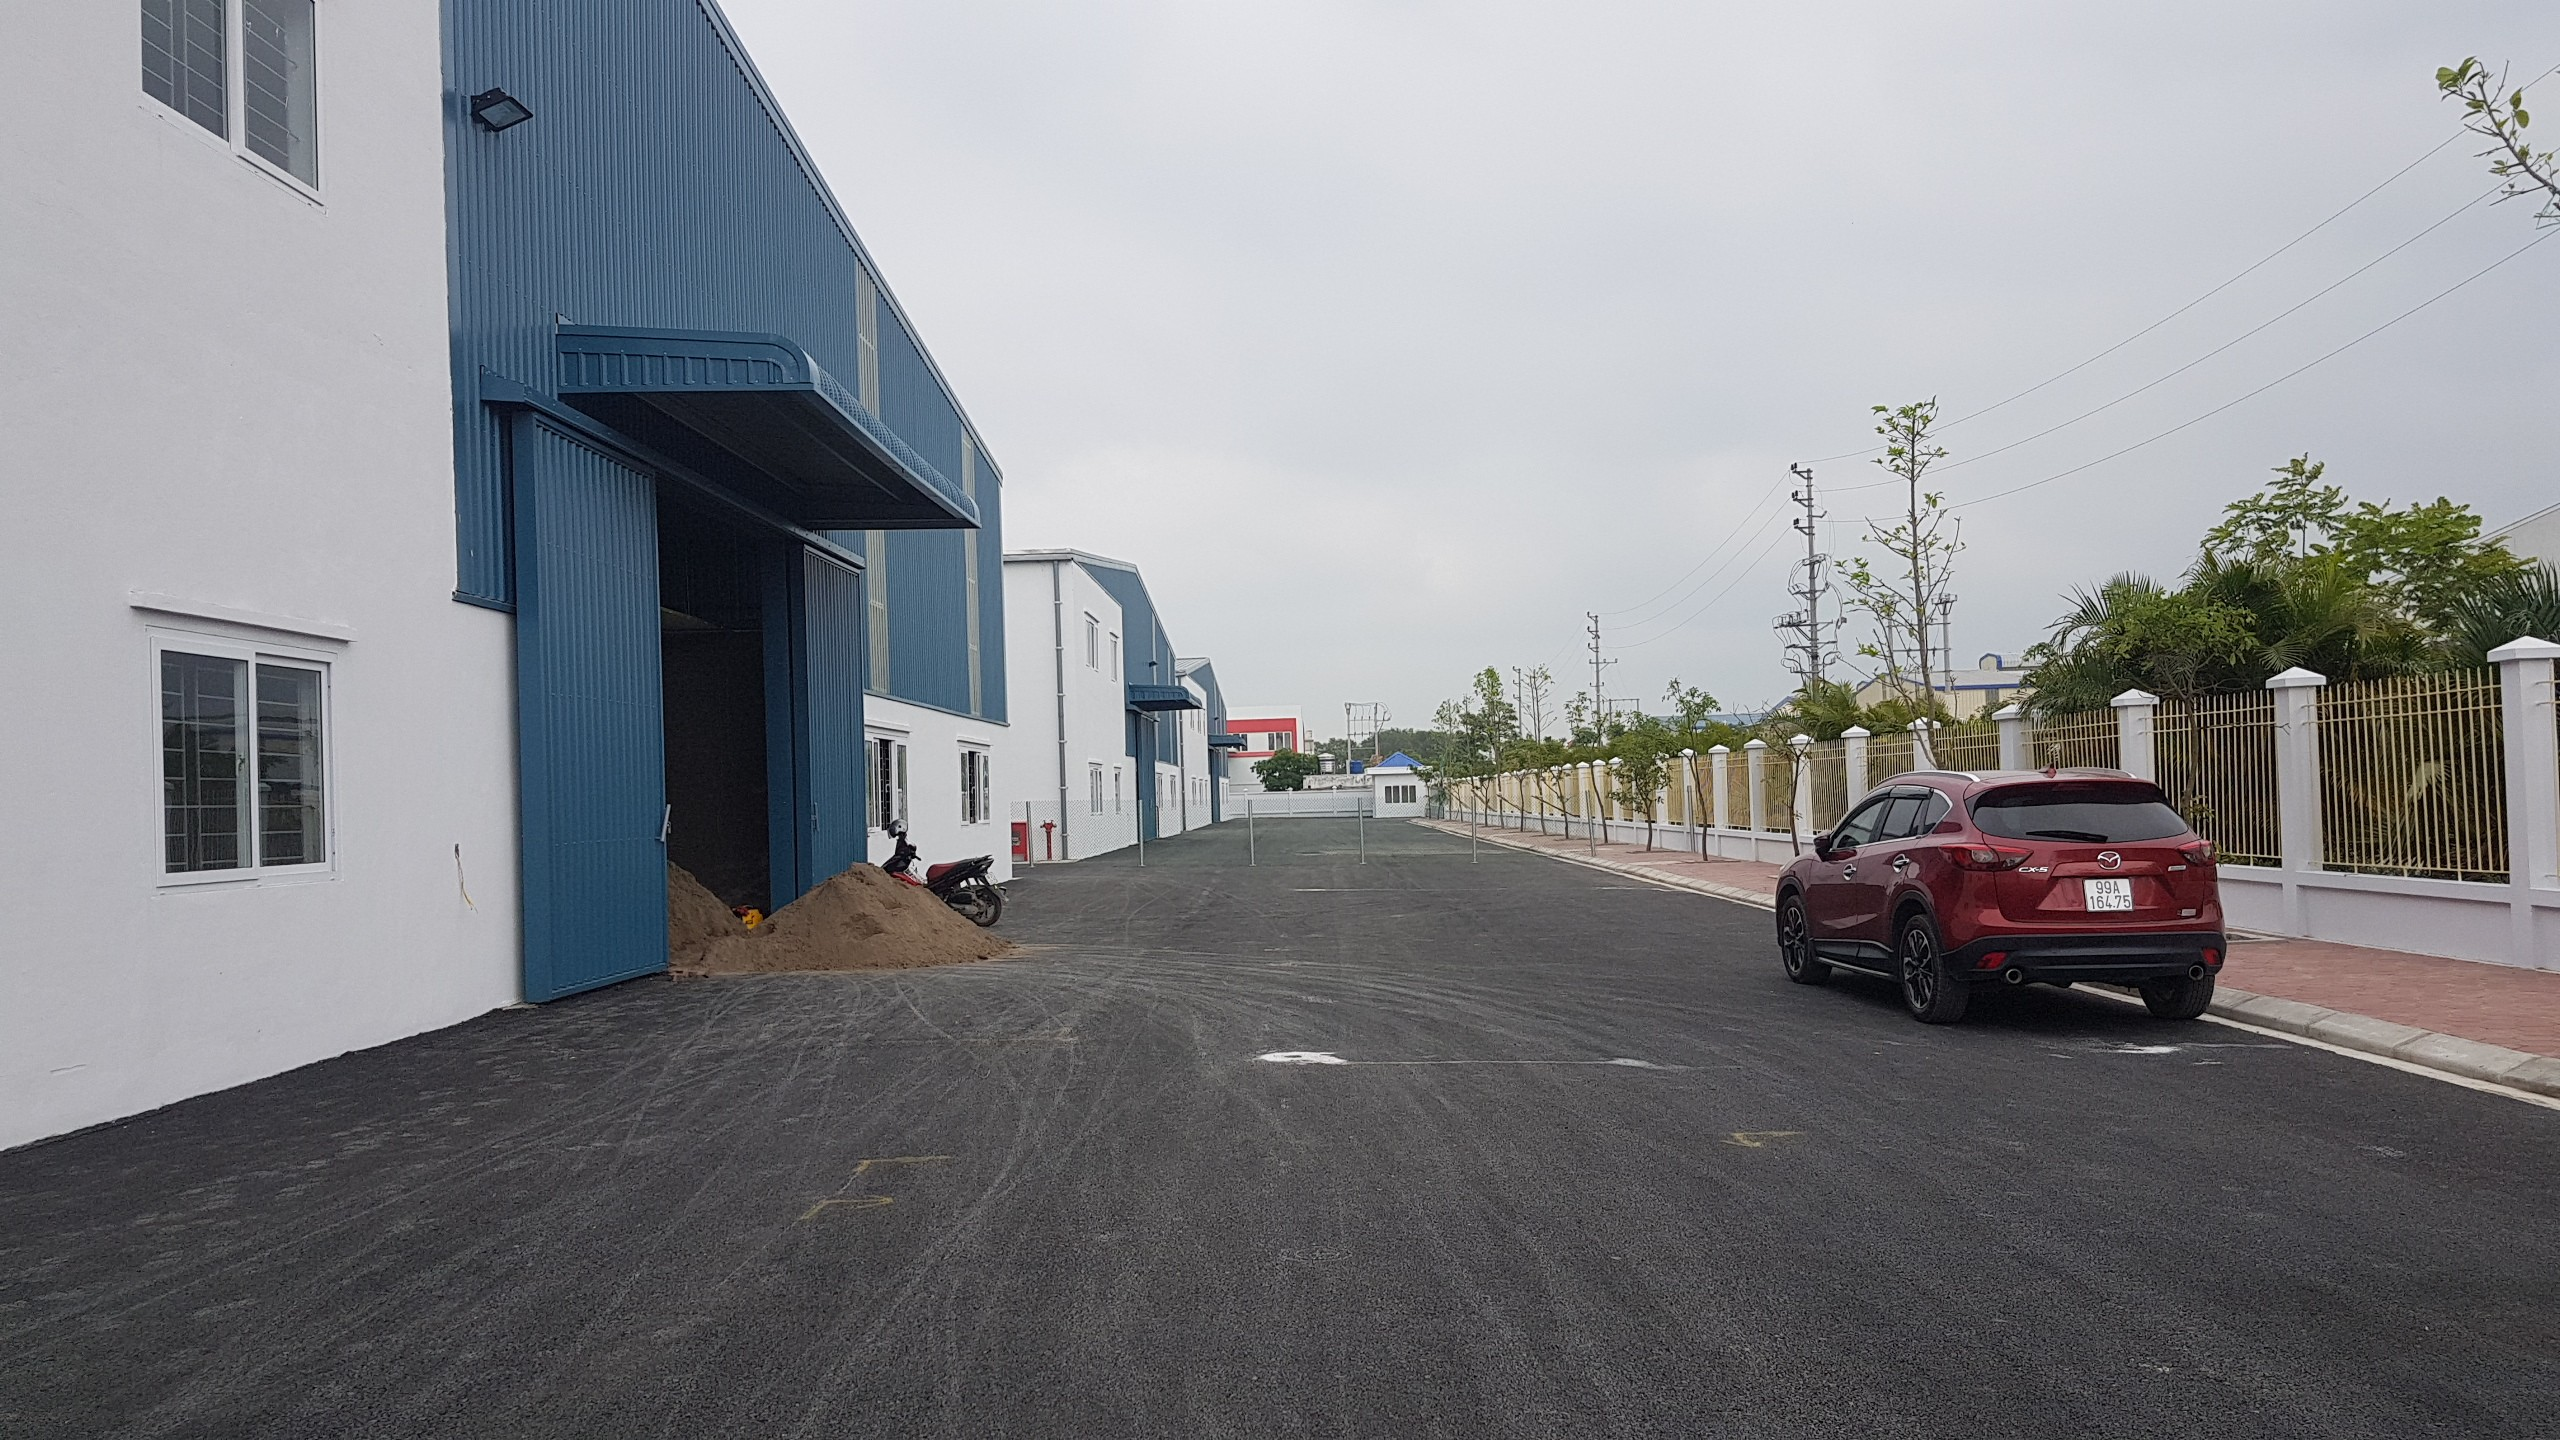 Factory for Lease in Khai Son Thuan Thanh, Bac Ninh Province